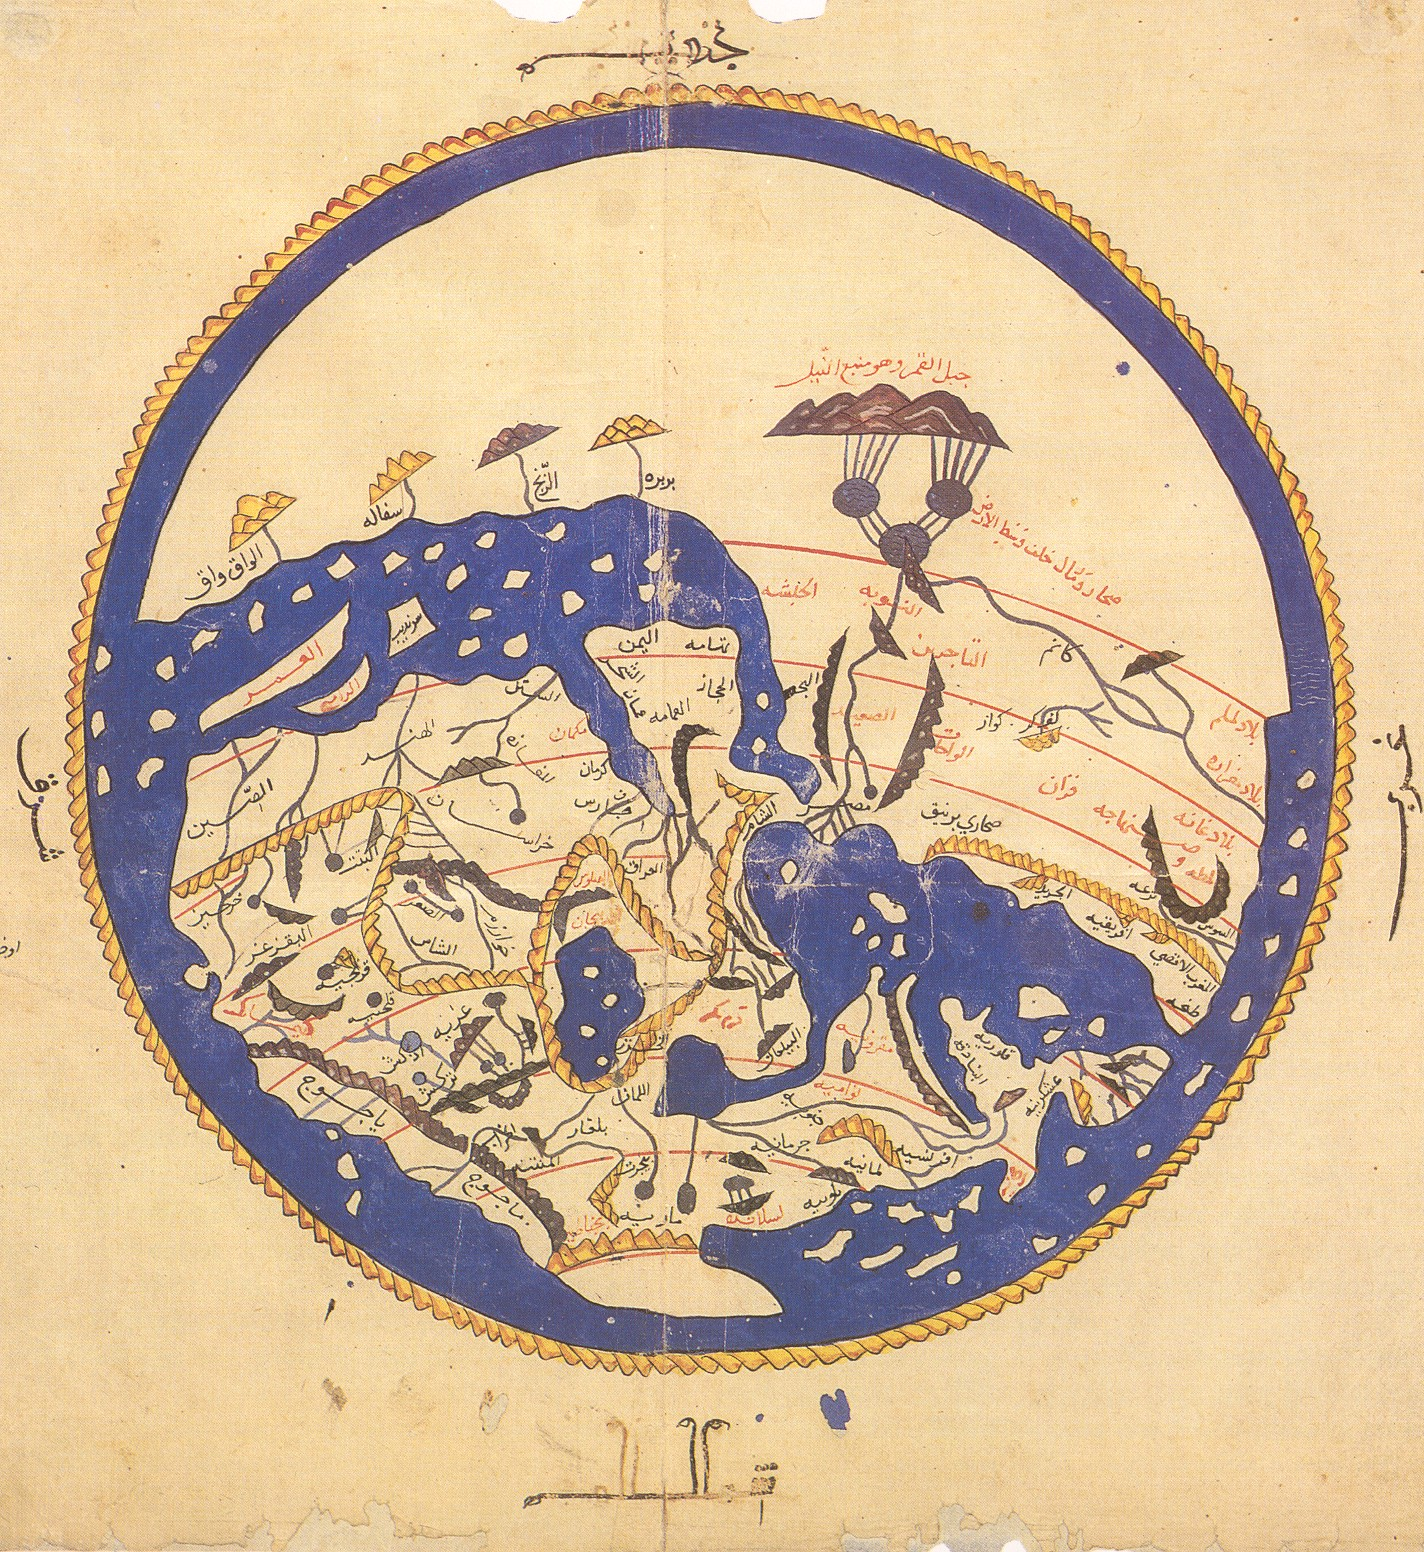 The map in the Bodleian manuscript of the Geography of al-Idrisi